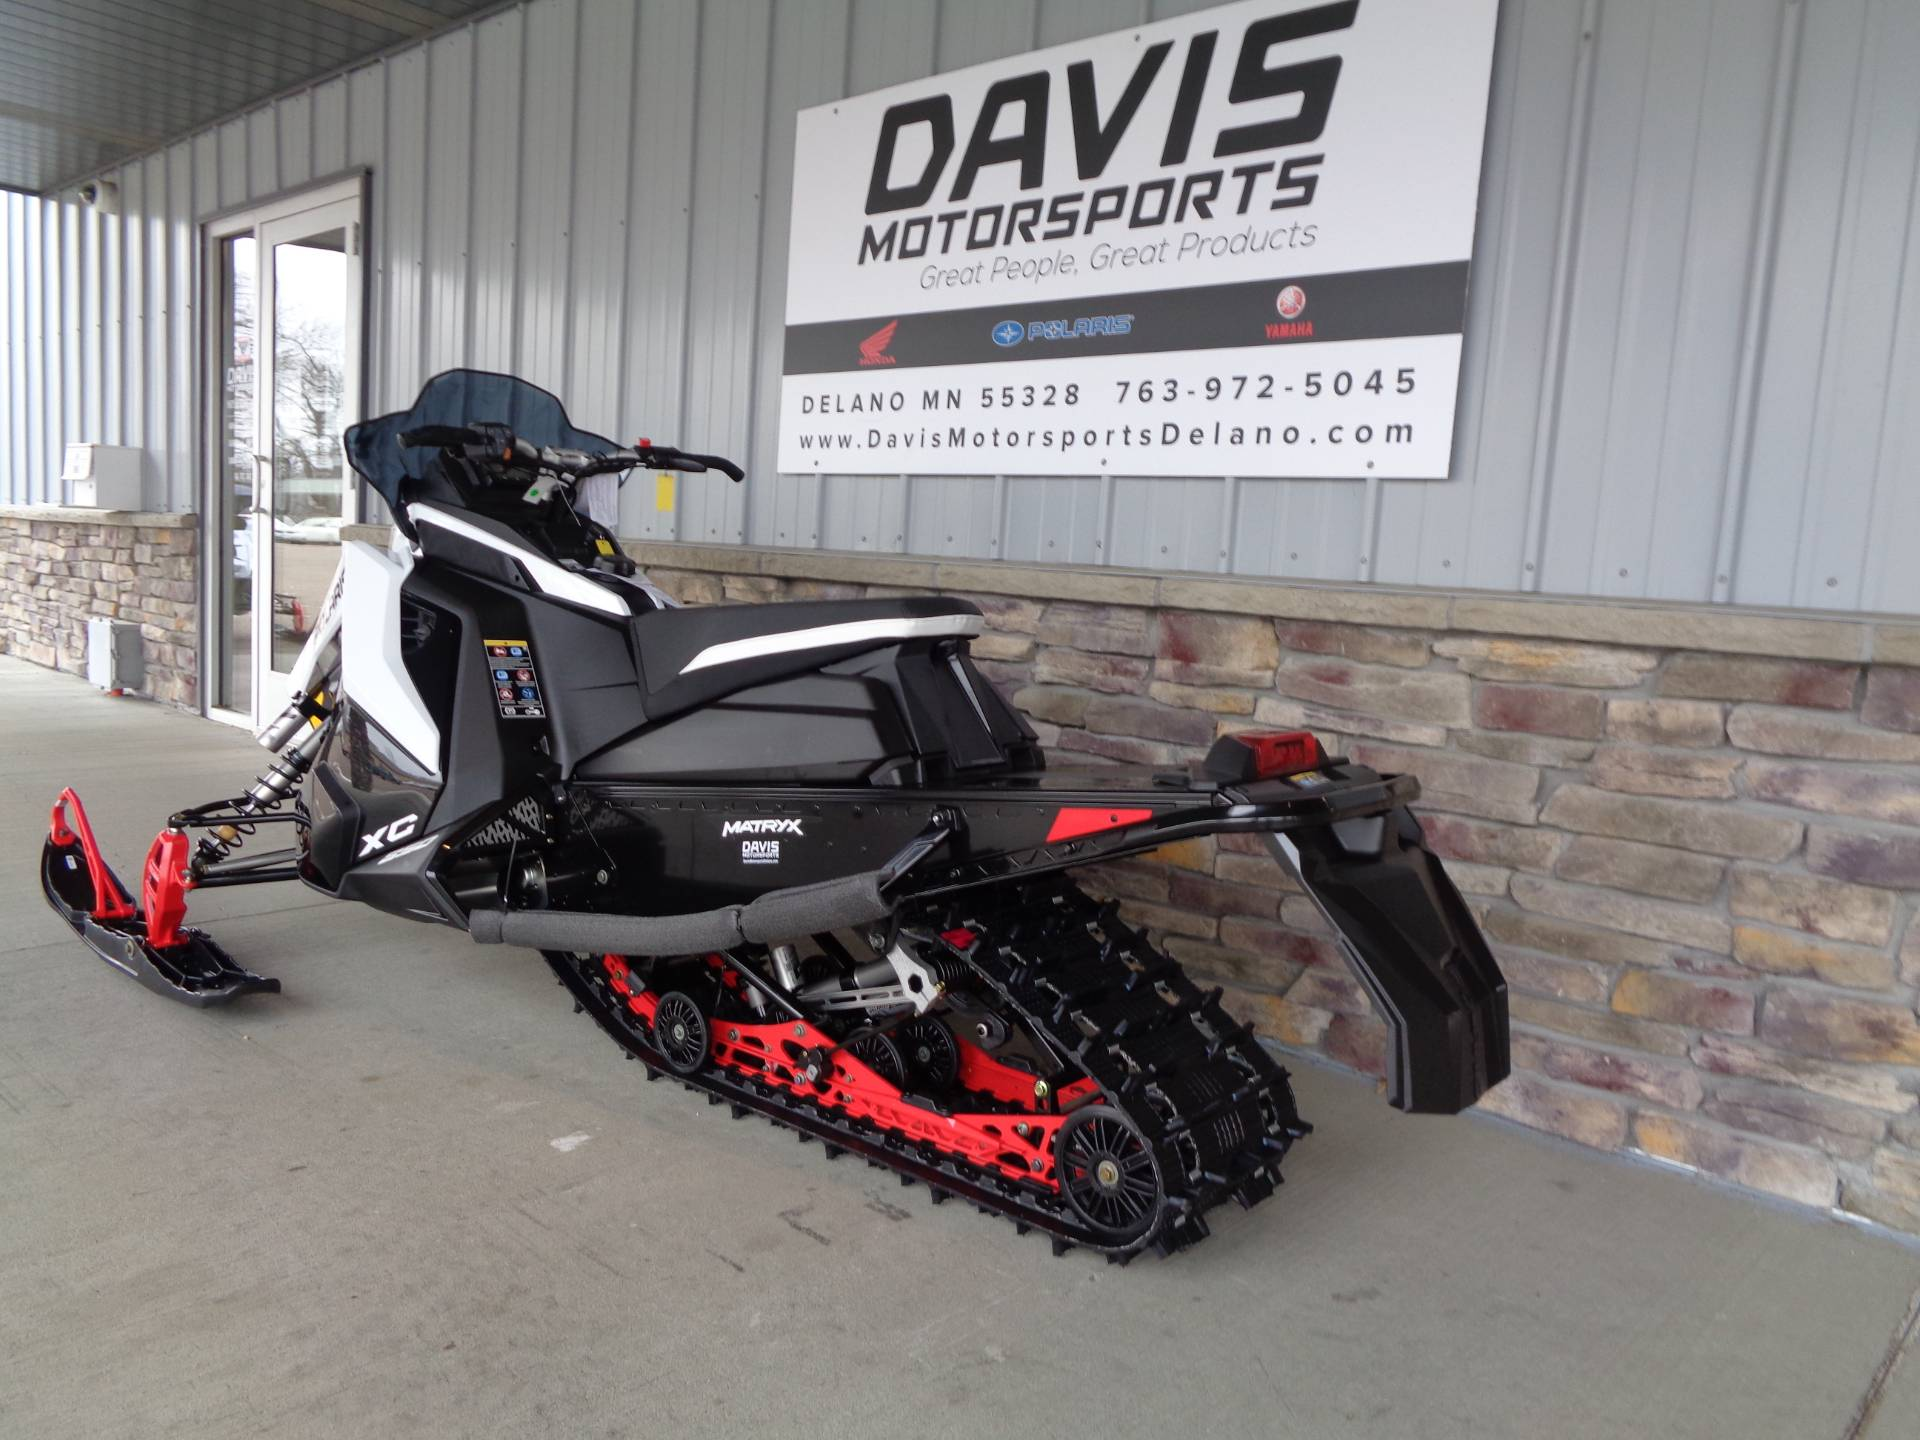 2021 Polaris 850 Indy XC 129 Launch Edition Factory Choice in Delano, Minnesota - Photo 6